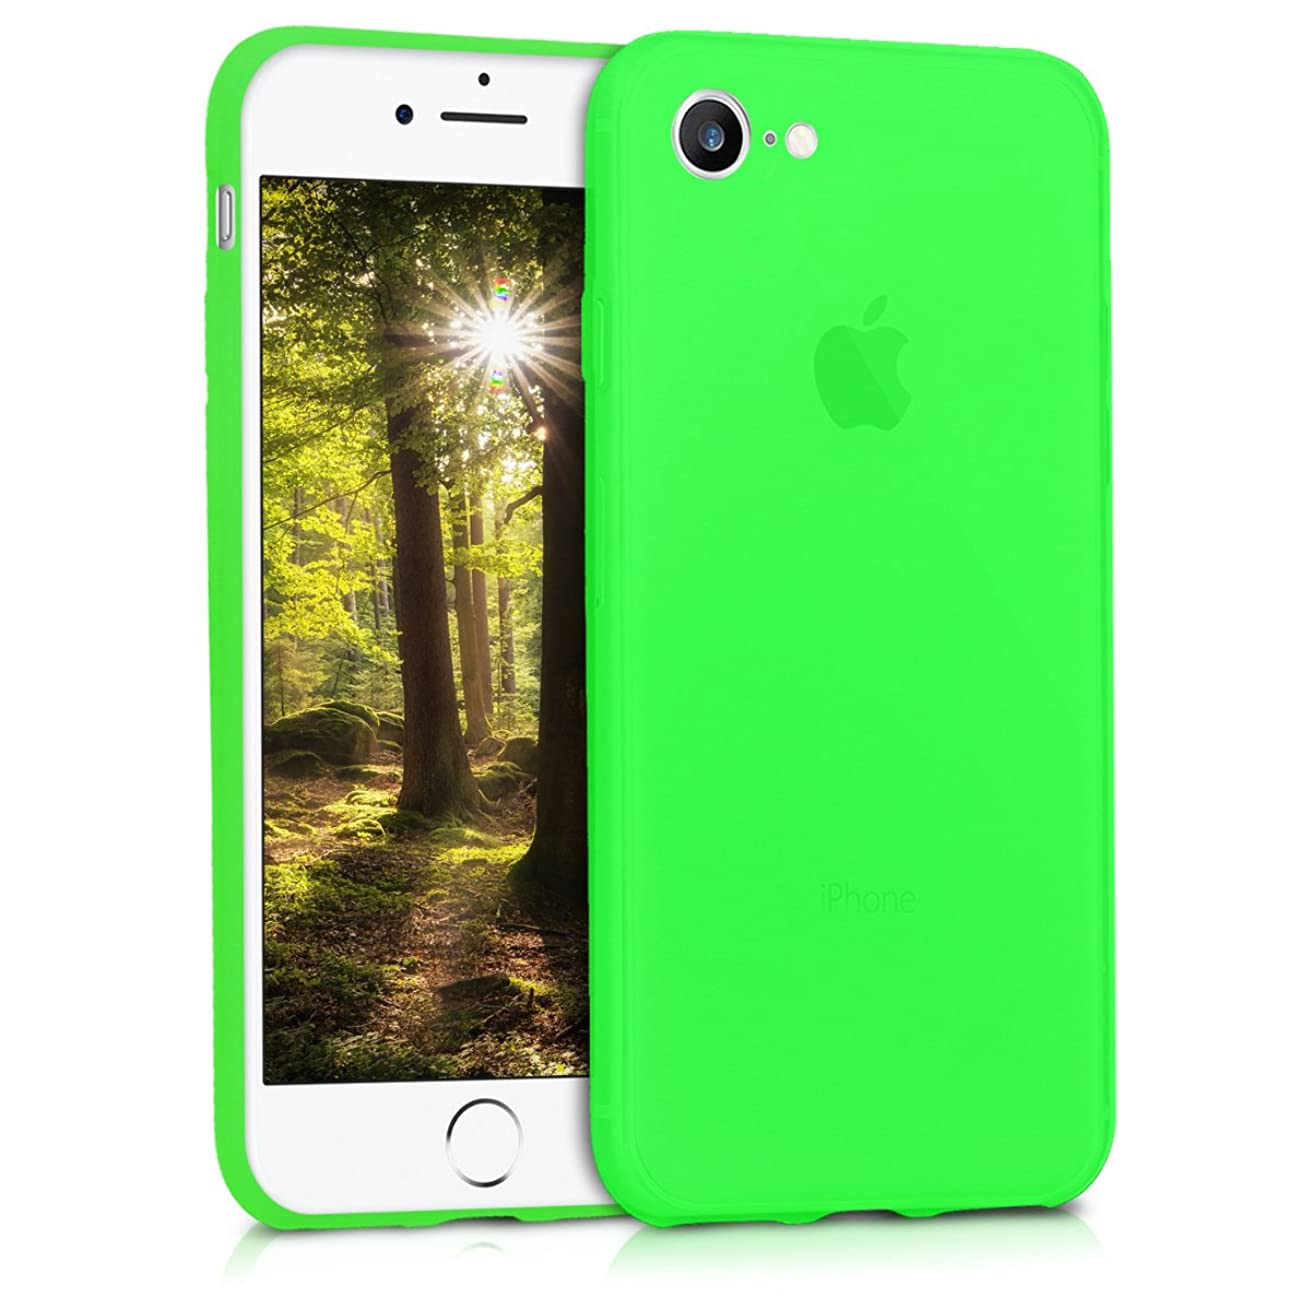 kwmobile TPU Silicone Case for Apple iPhone 7/8 - Soft Flexible Shock Absorbent Protective Phone Cover - Neon Green